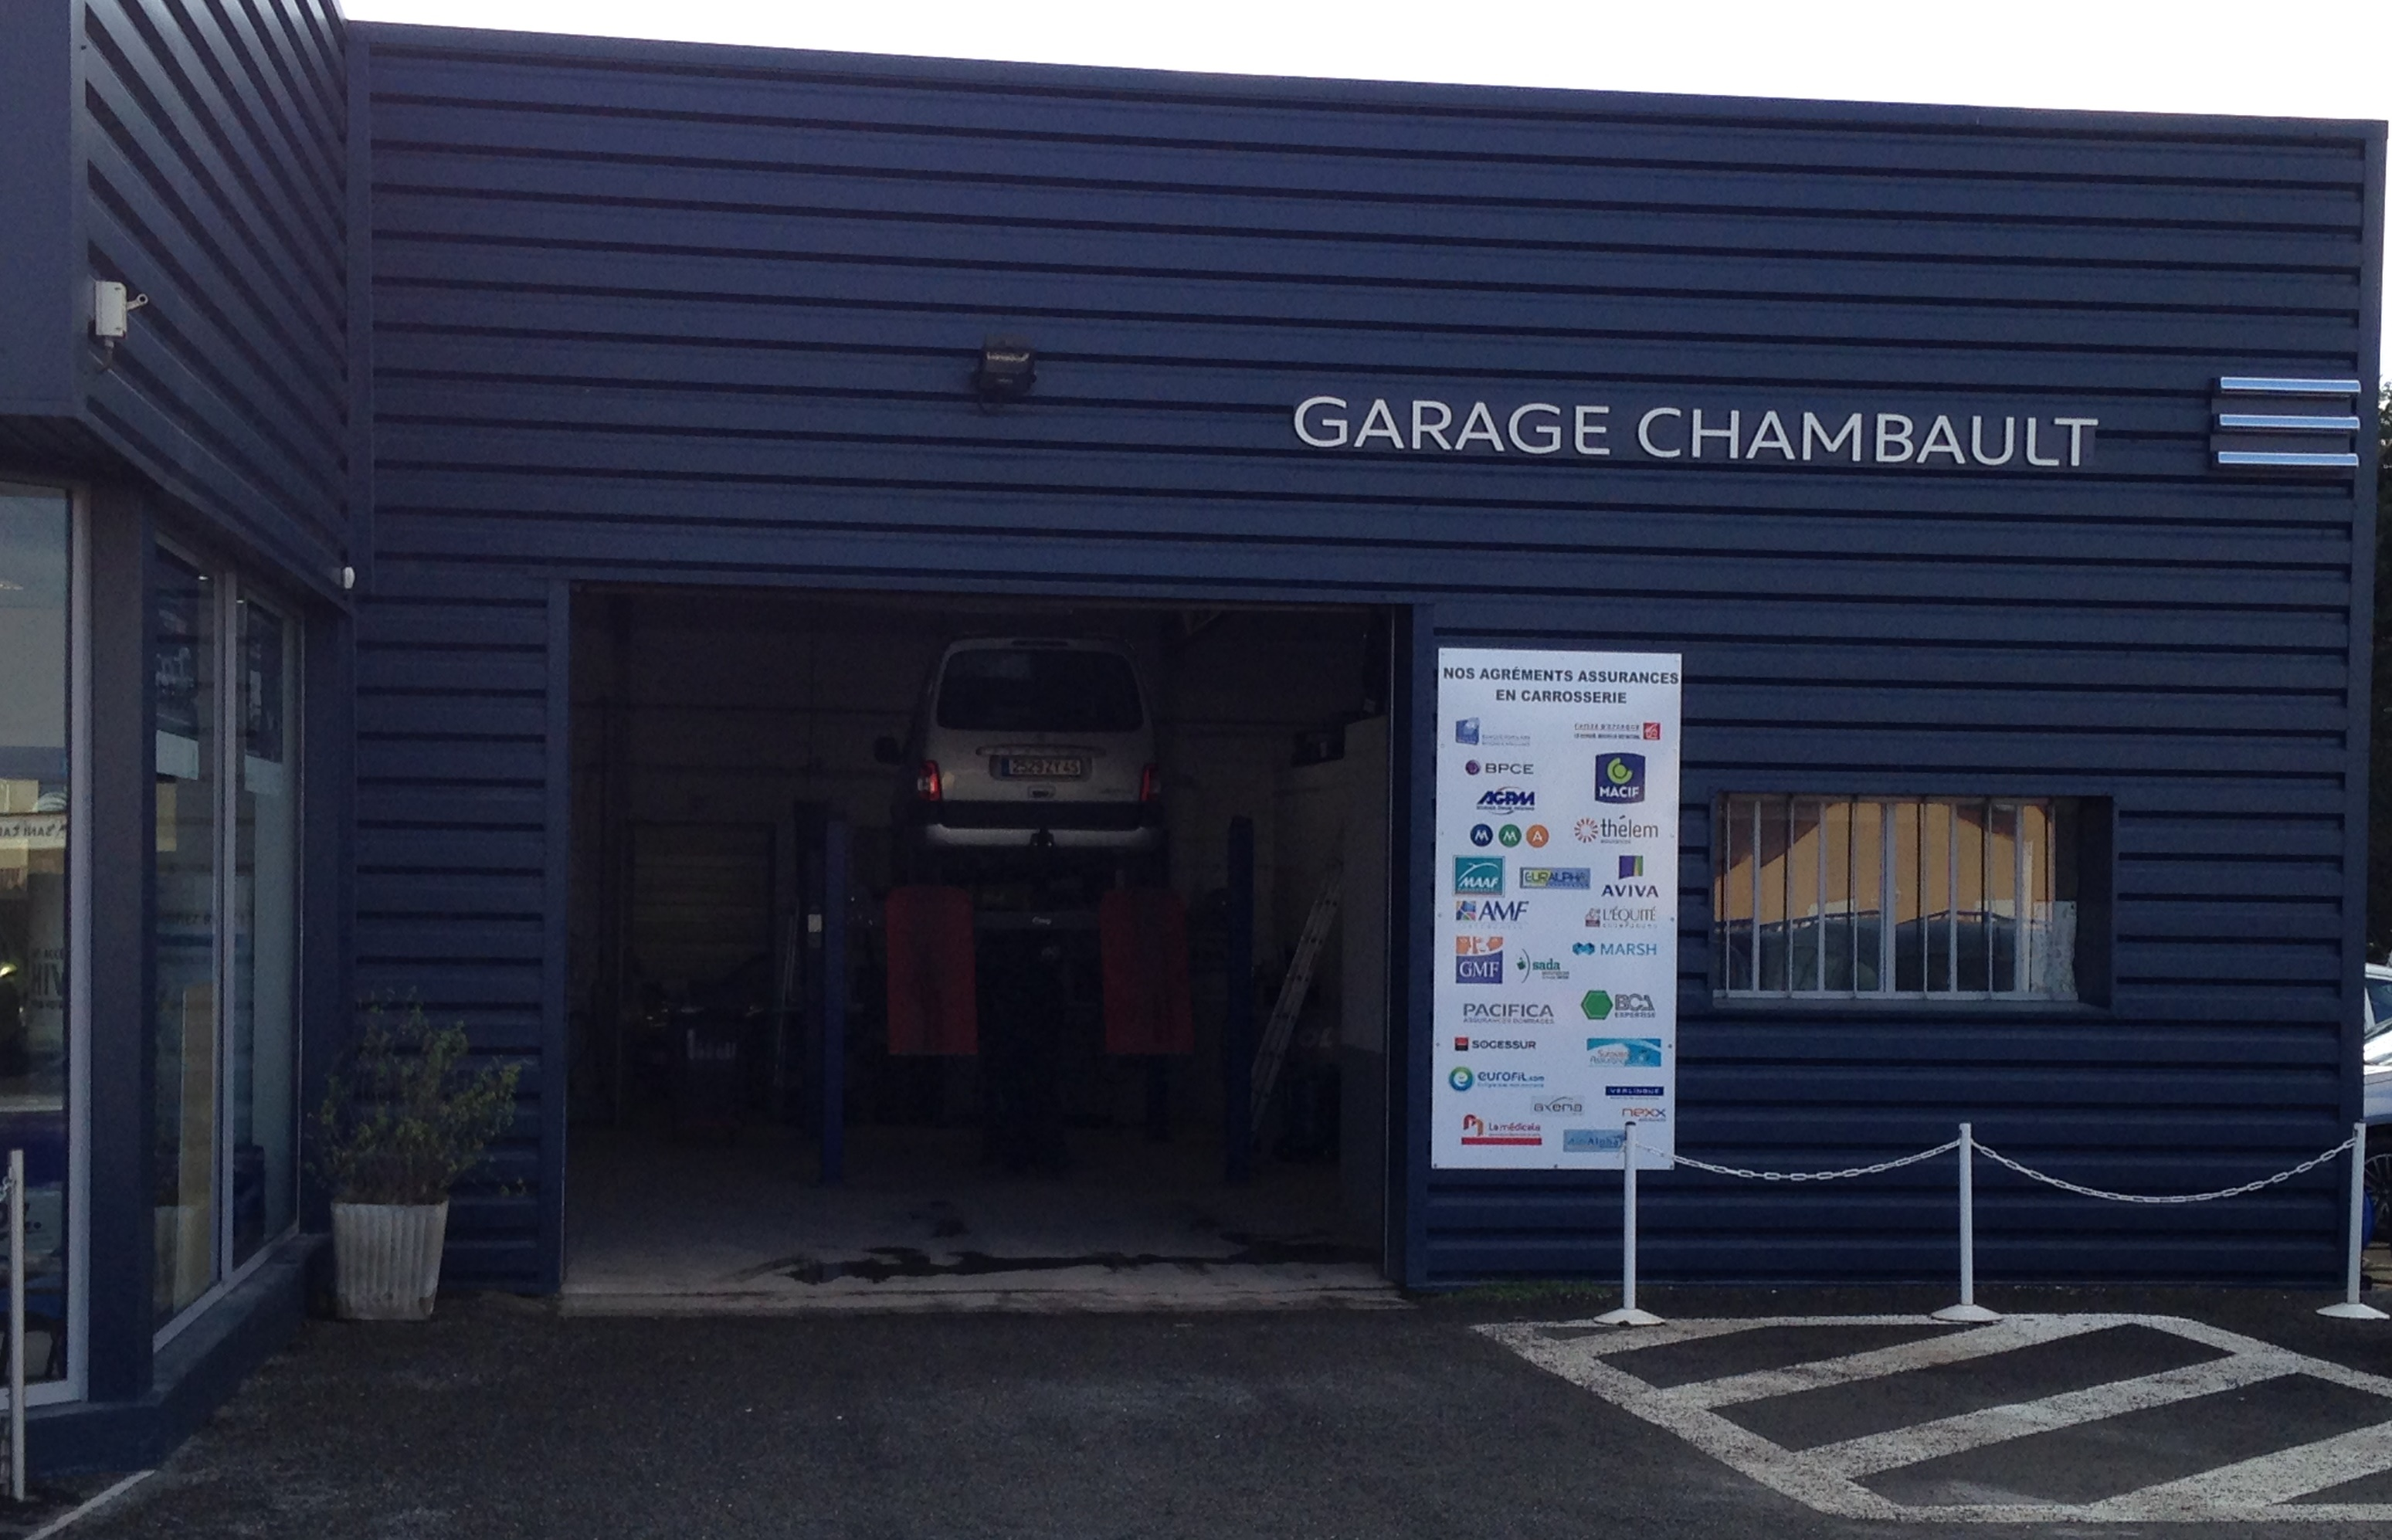 Pr sentation de la soci t garage chambault for Garage peugeot montfort